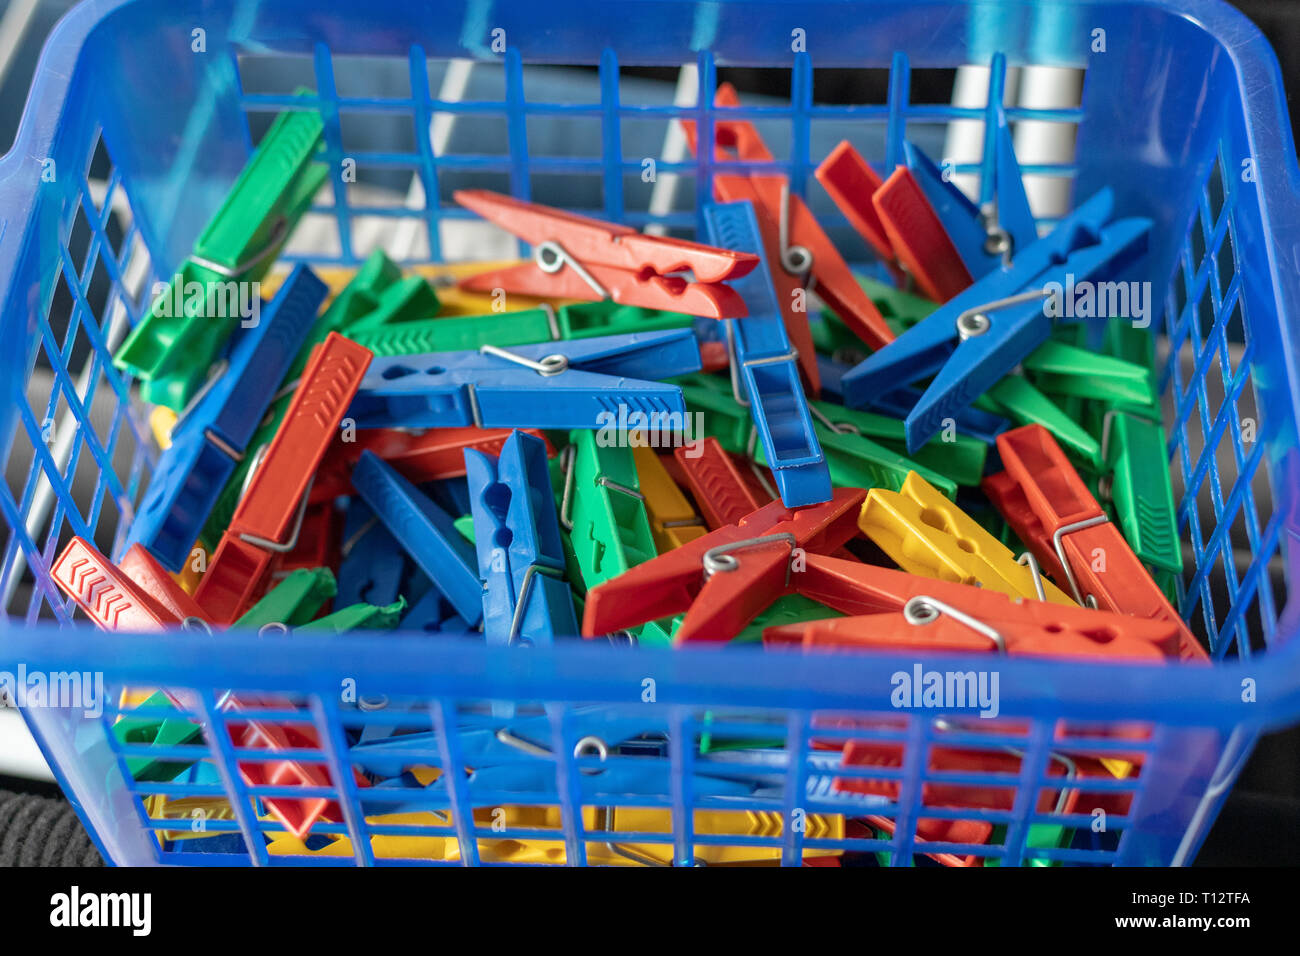 Colorful clothespins in a blue basket - Stock Image